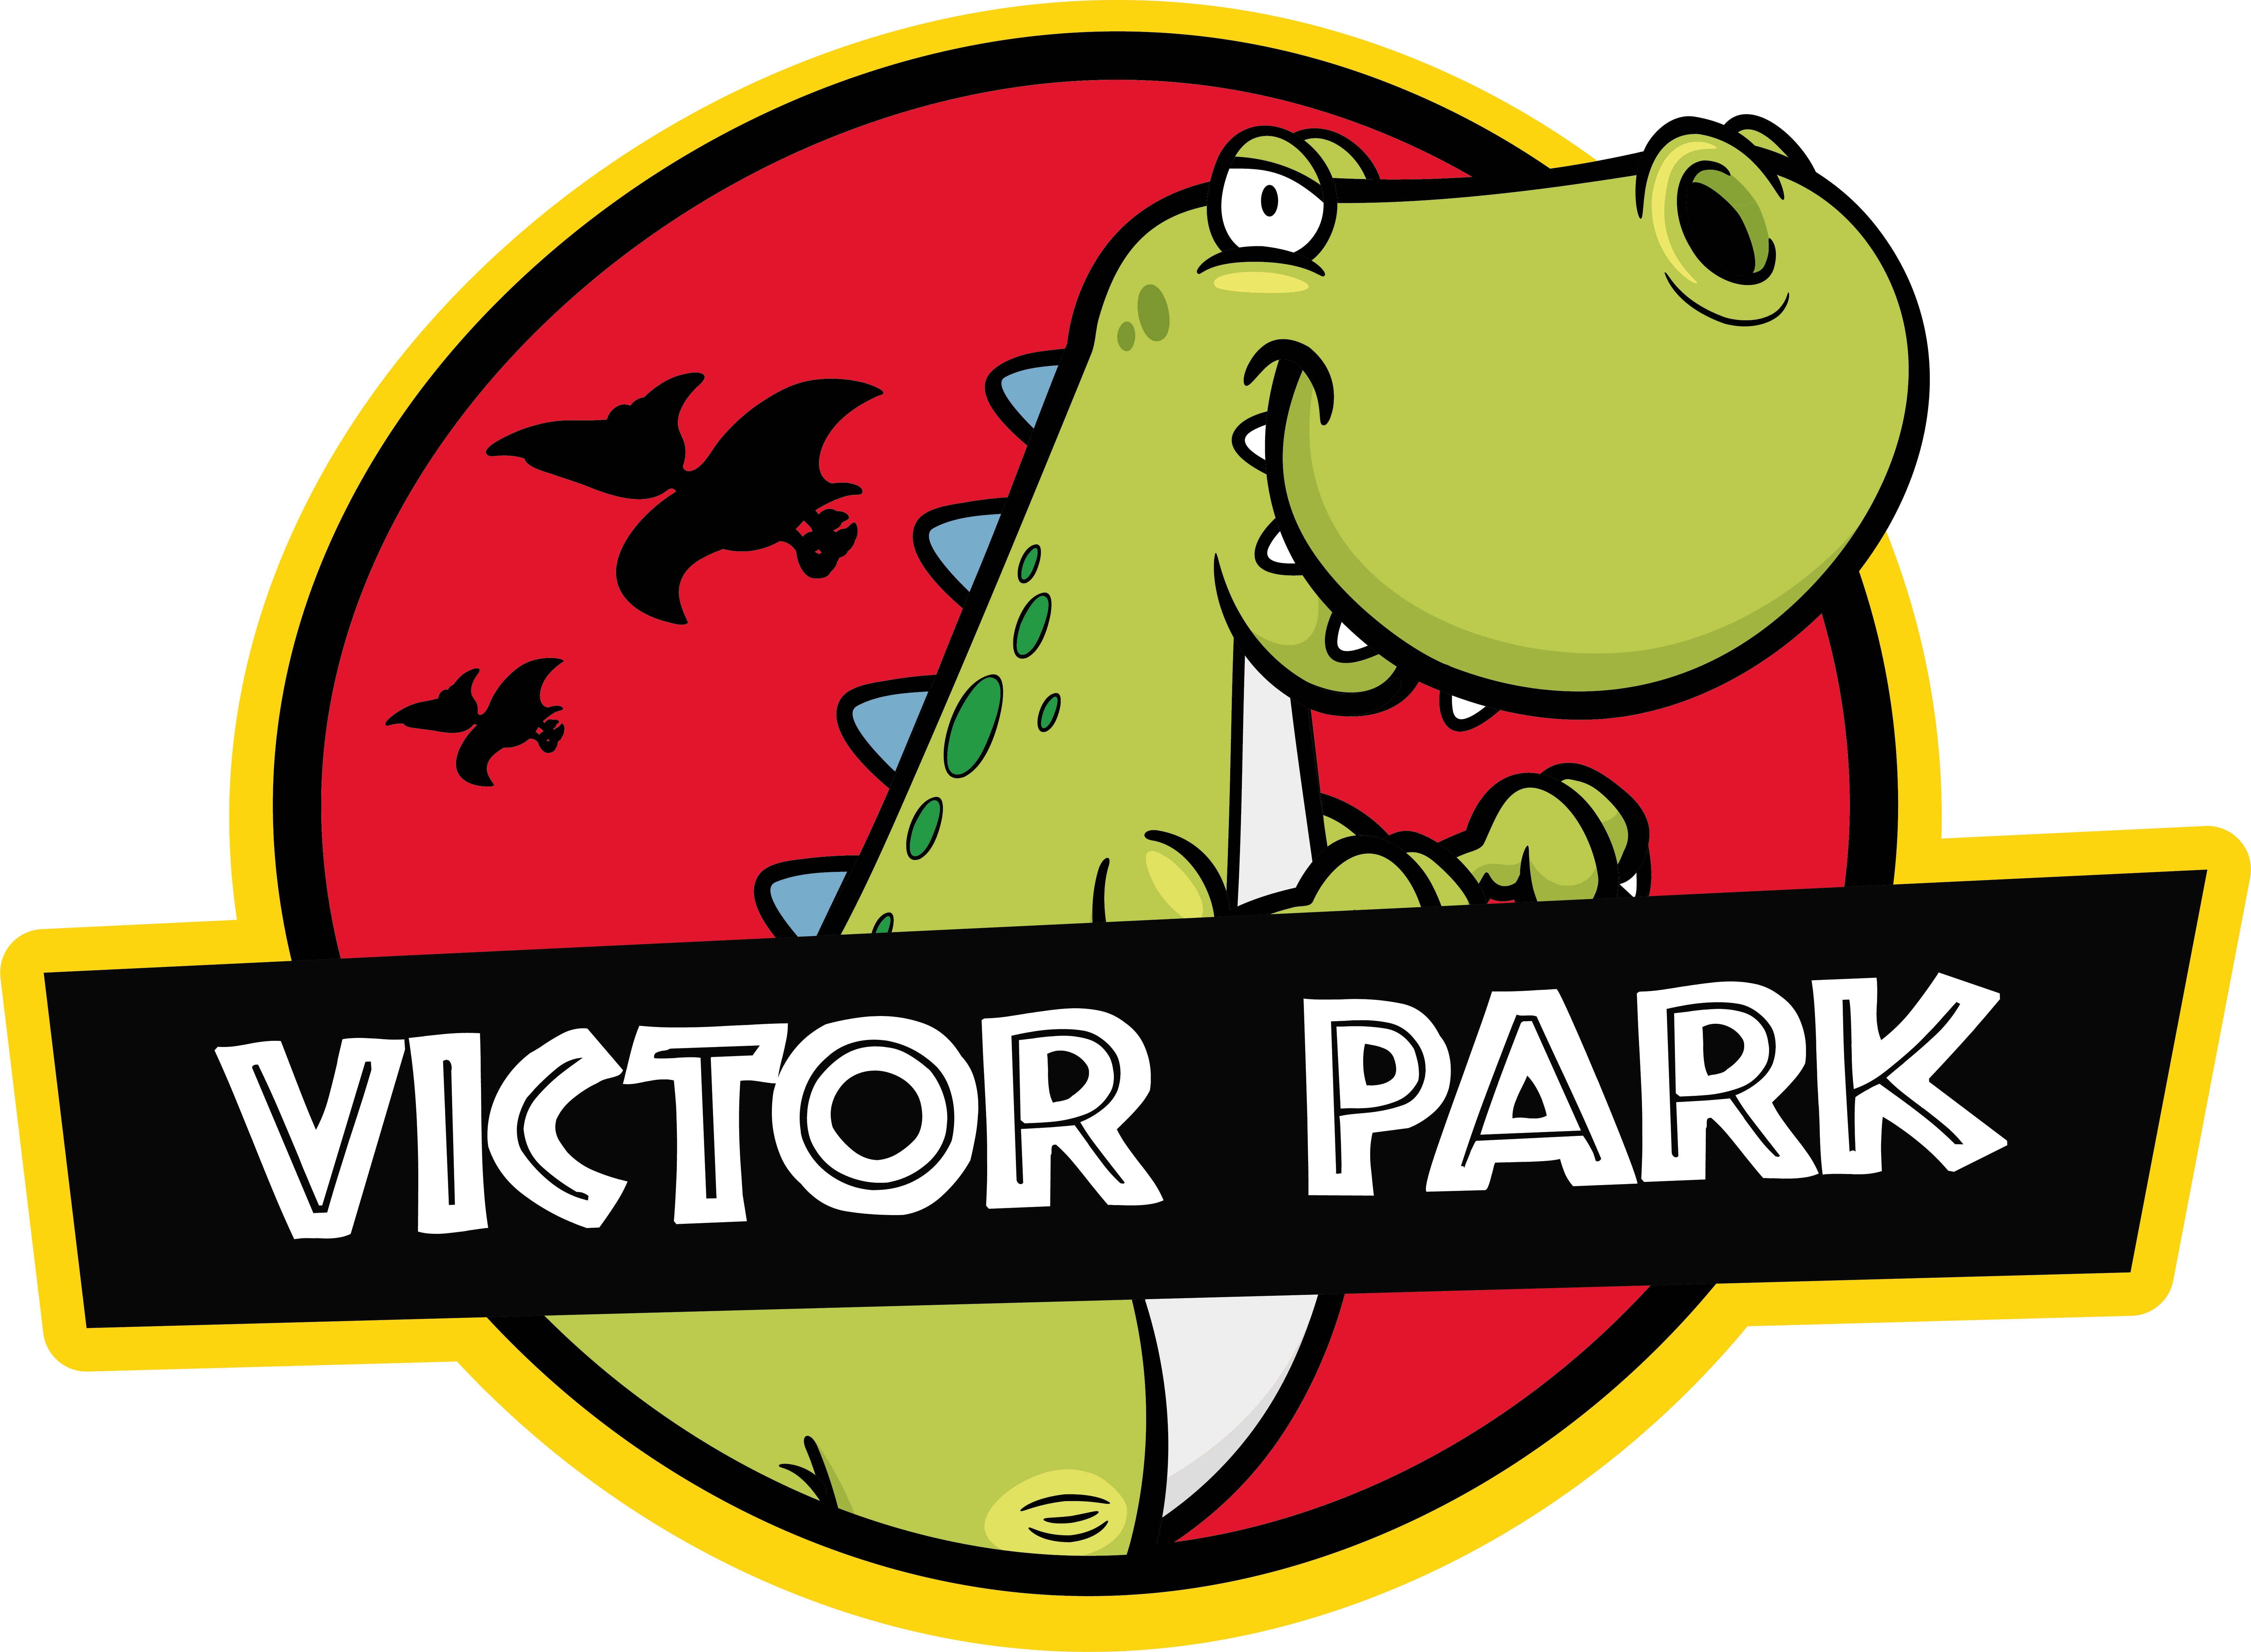 TenStickers. Jurassic Park dinosaur kids t-shirt  with name. Dinosaur kids t-shirt ofJurassic Park. he design is made up of a funny dinosaur with a mischievous face. Make the little ones enjoy their new outfit.